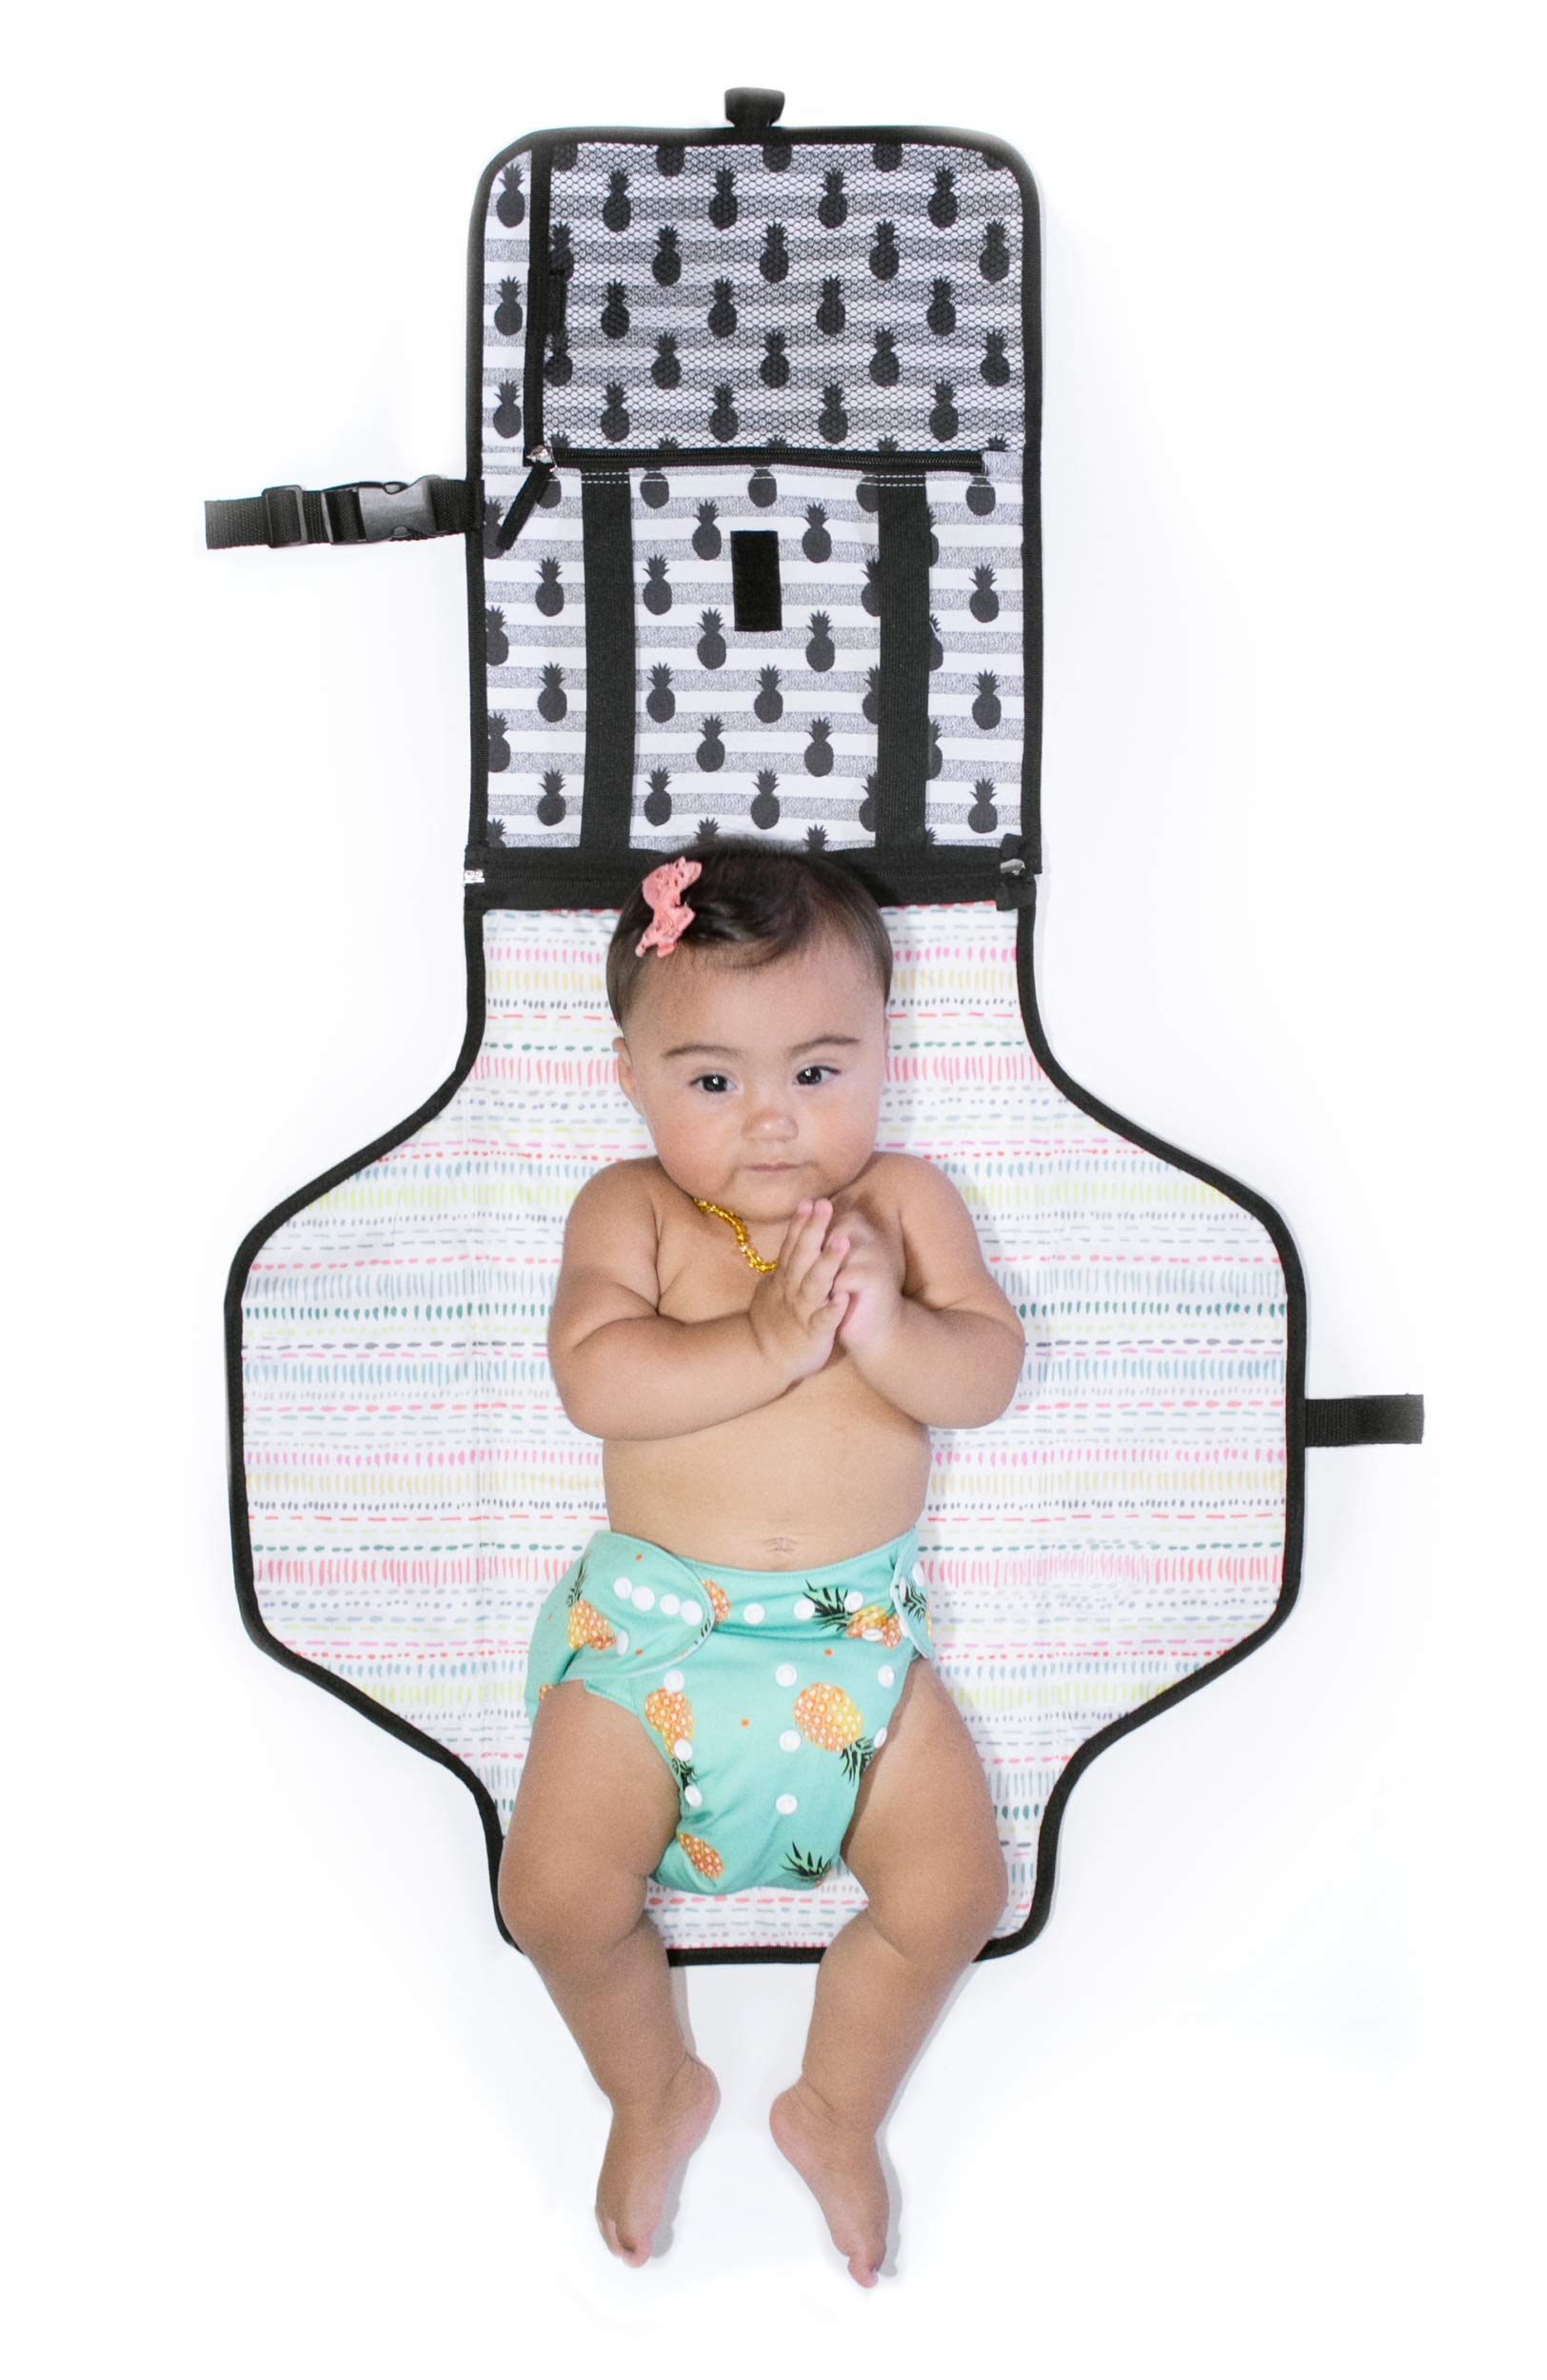 Diaper Changing Pad Diaper Change Mat with Head Cushion and Pockets,Infants Baby Portable Waterproof Changer Mat for Home,Travel & Outside